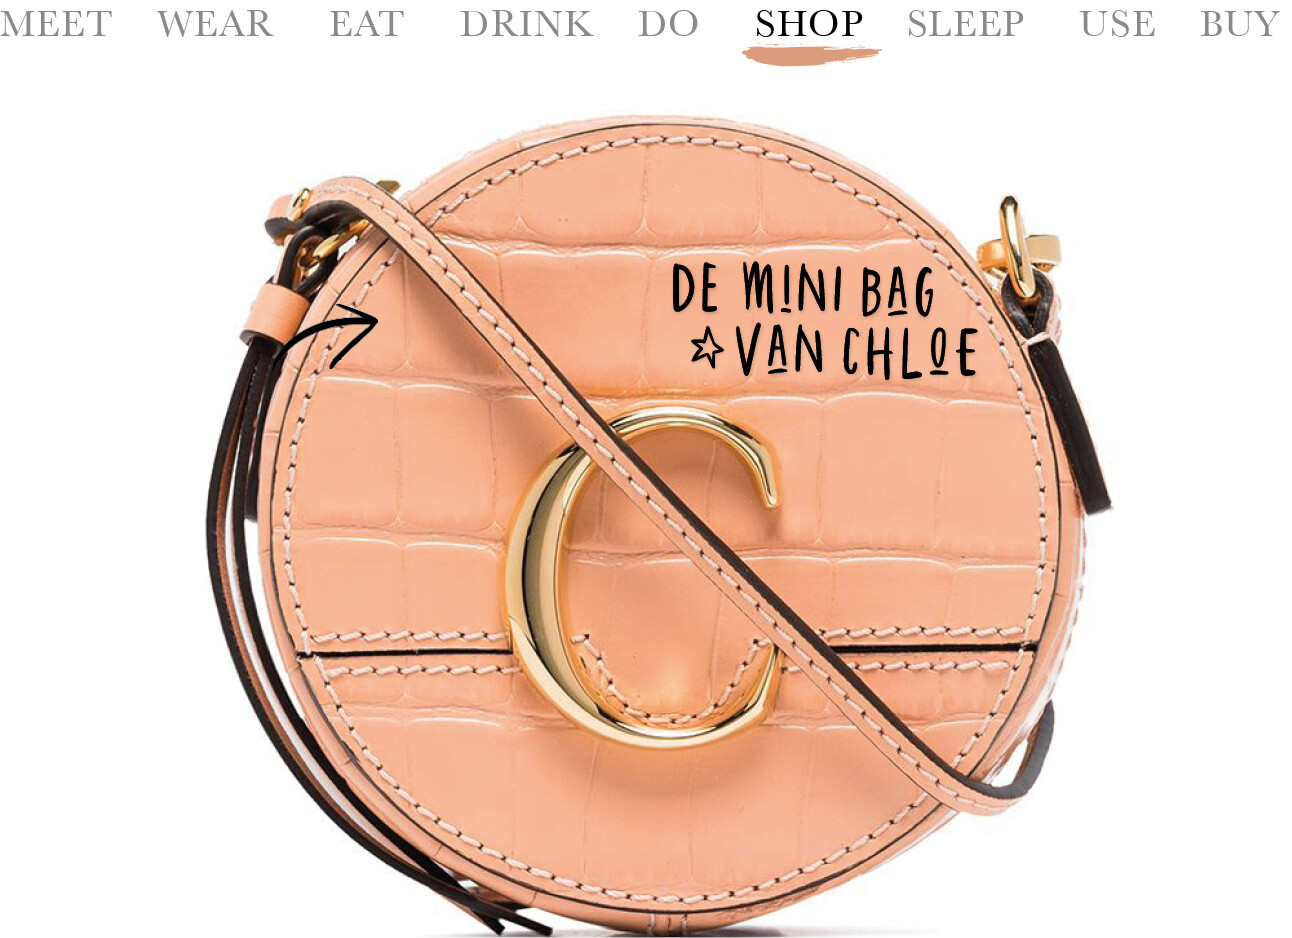 Today we shop de mini bag van Chloé